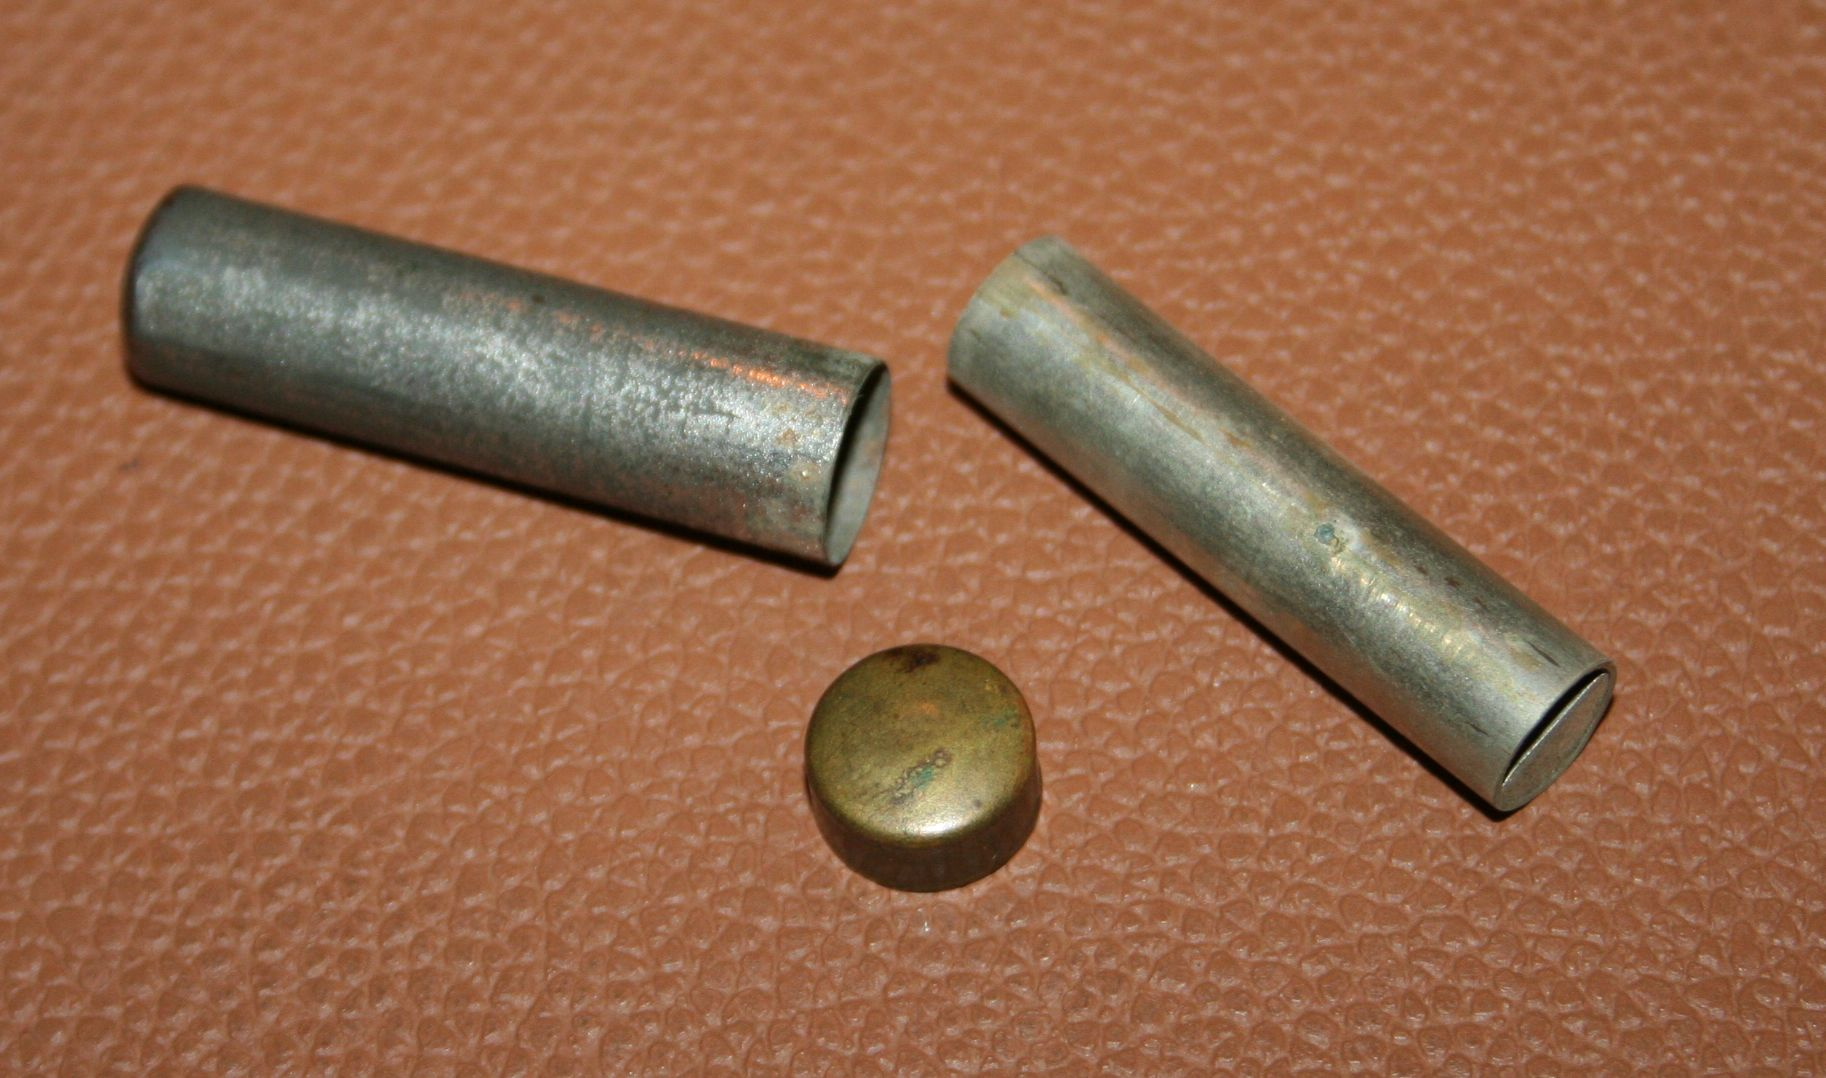 Here is an Antique pitch pipe we found in an old Gibson case & Here is an Antique pitch pipe we found in an old Gibson L-1 case ...